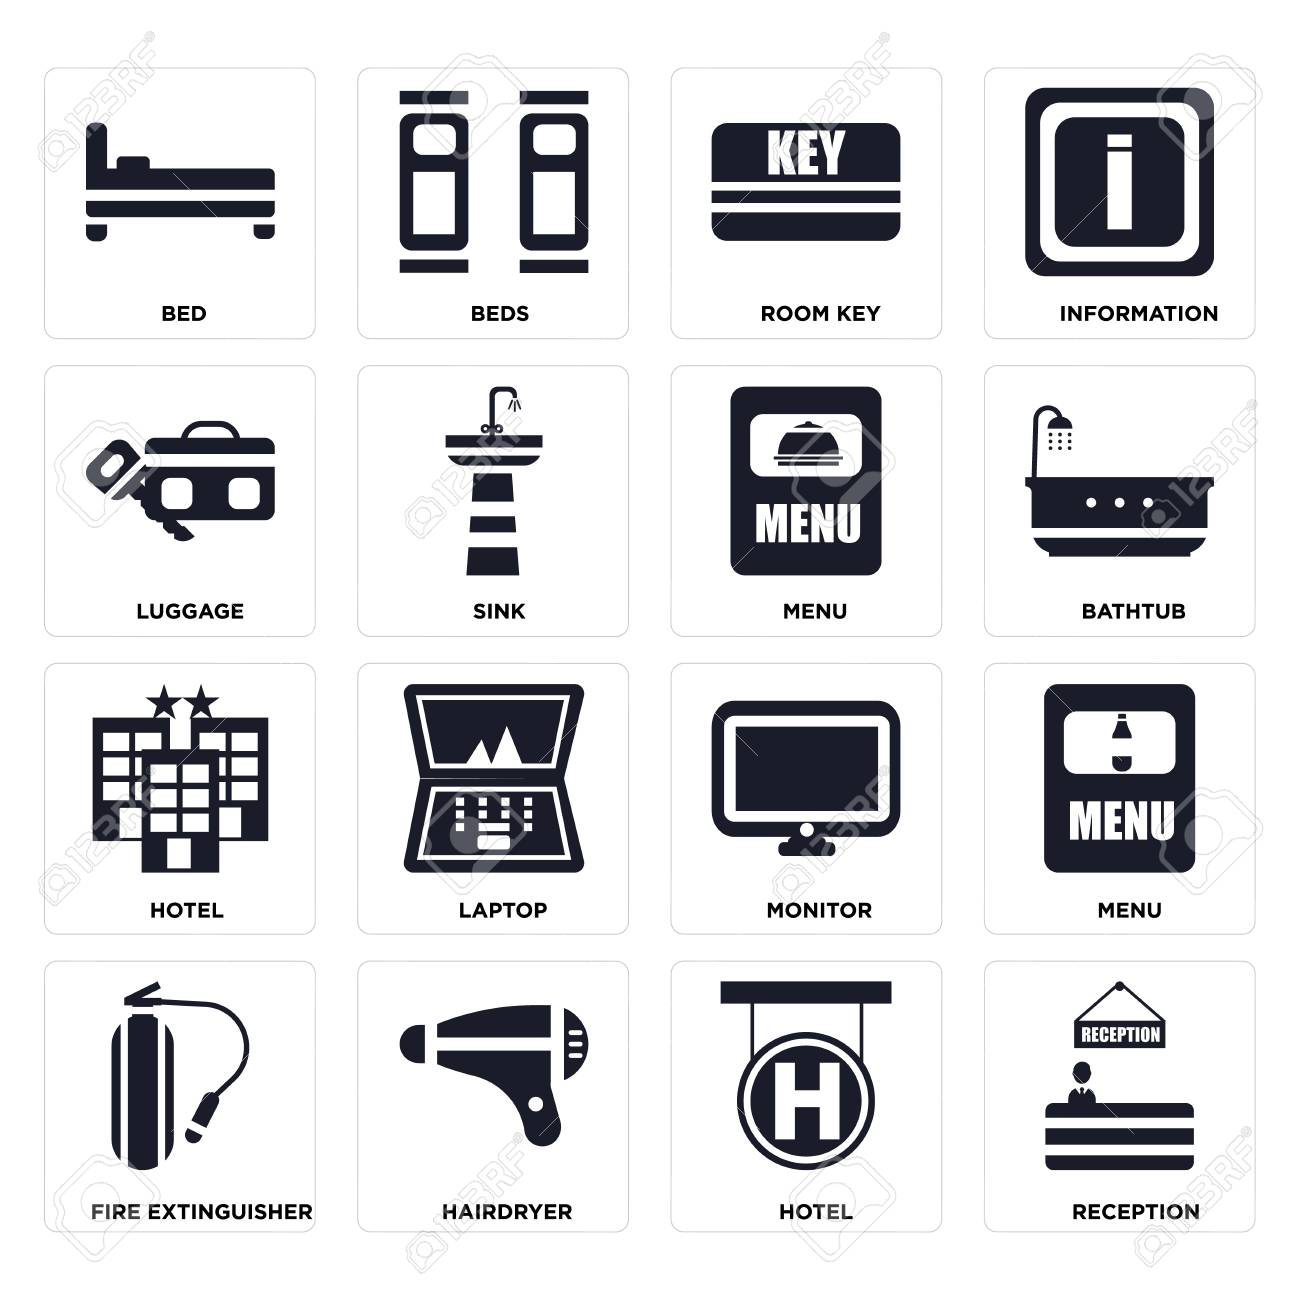 Set Of 16 icons such as Reception, Hotel, Hairdryer, Fire extinguisher, Menu, Bed, Luggage on transparent background, pixel perfect - 116184580